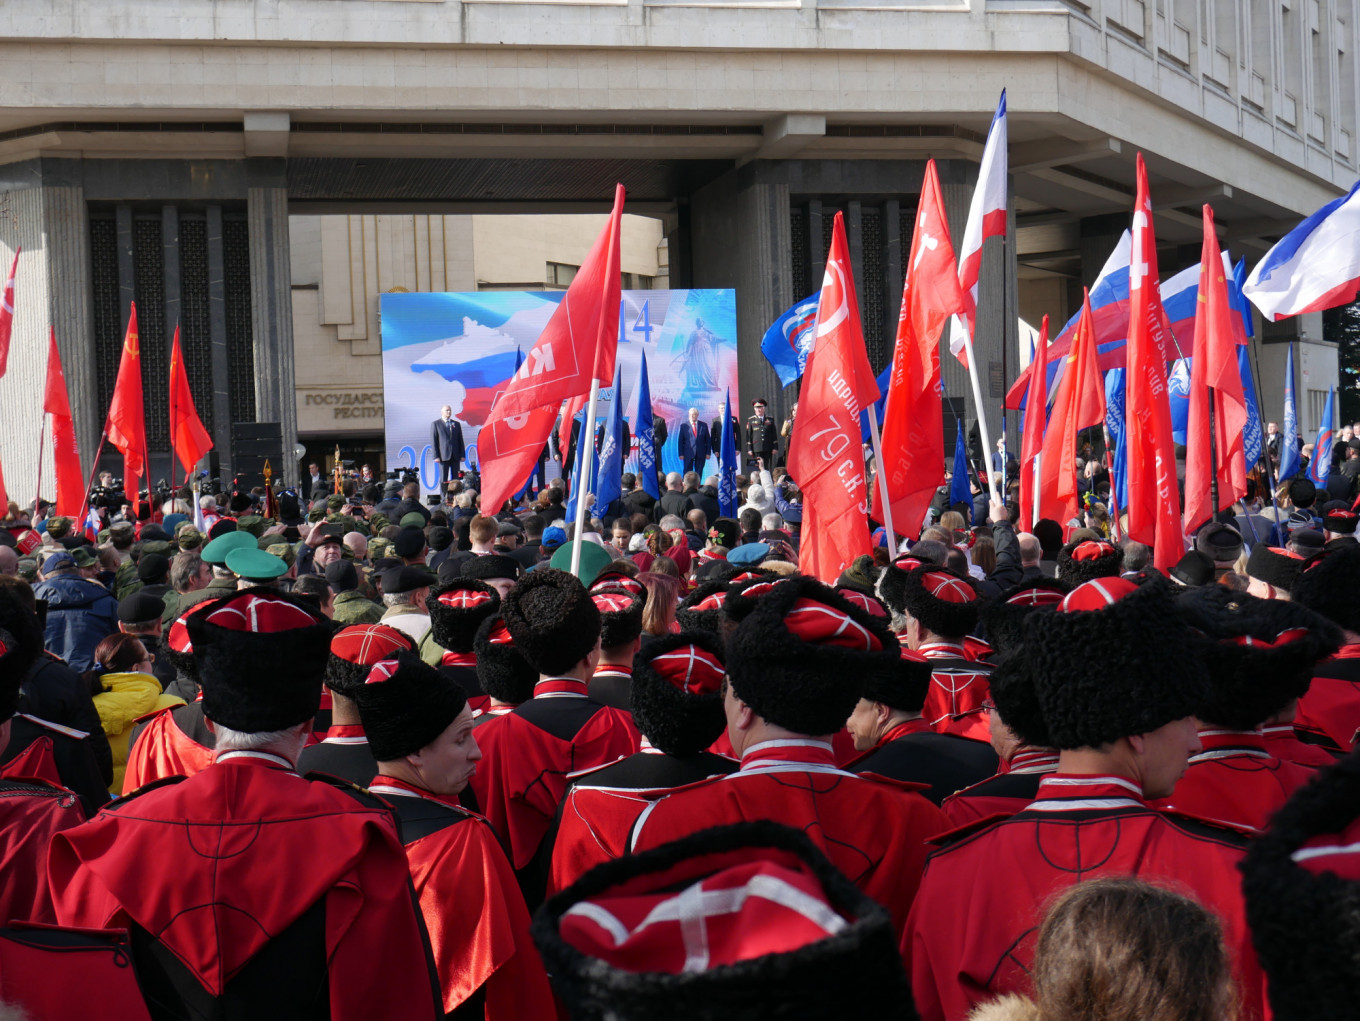 Hundreds of Cossacks from southern Russian participated in the events Friday.				 				The Moscow Times